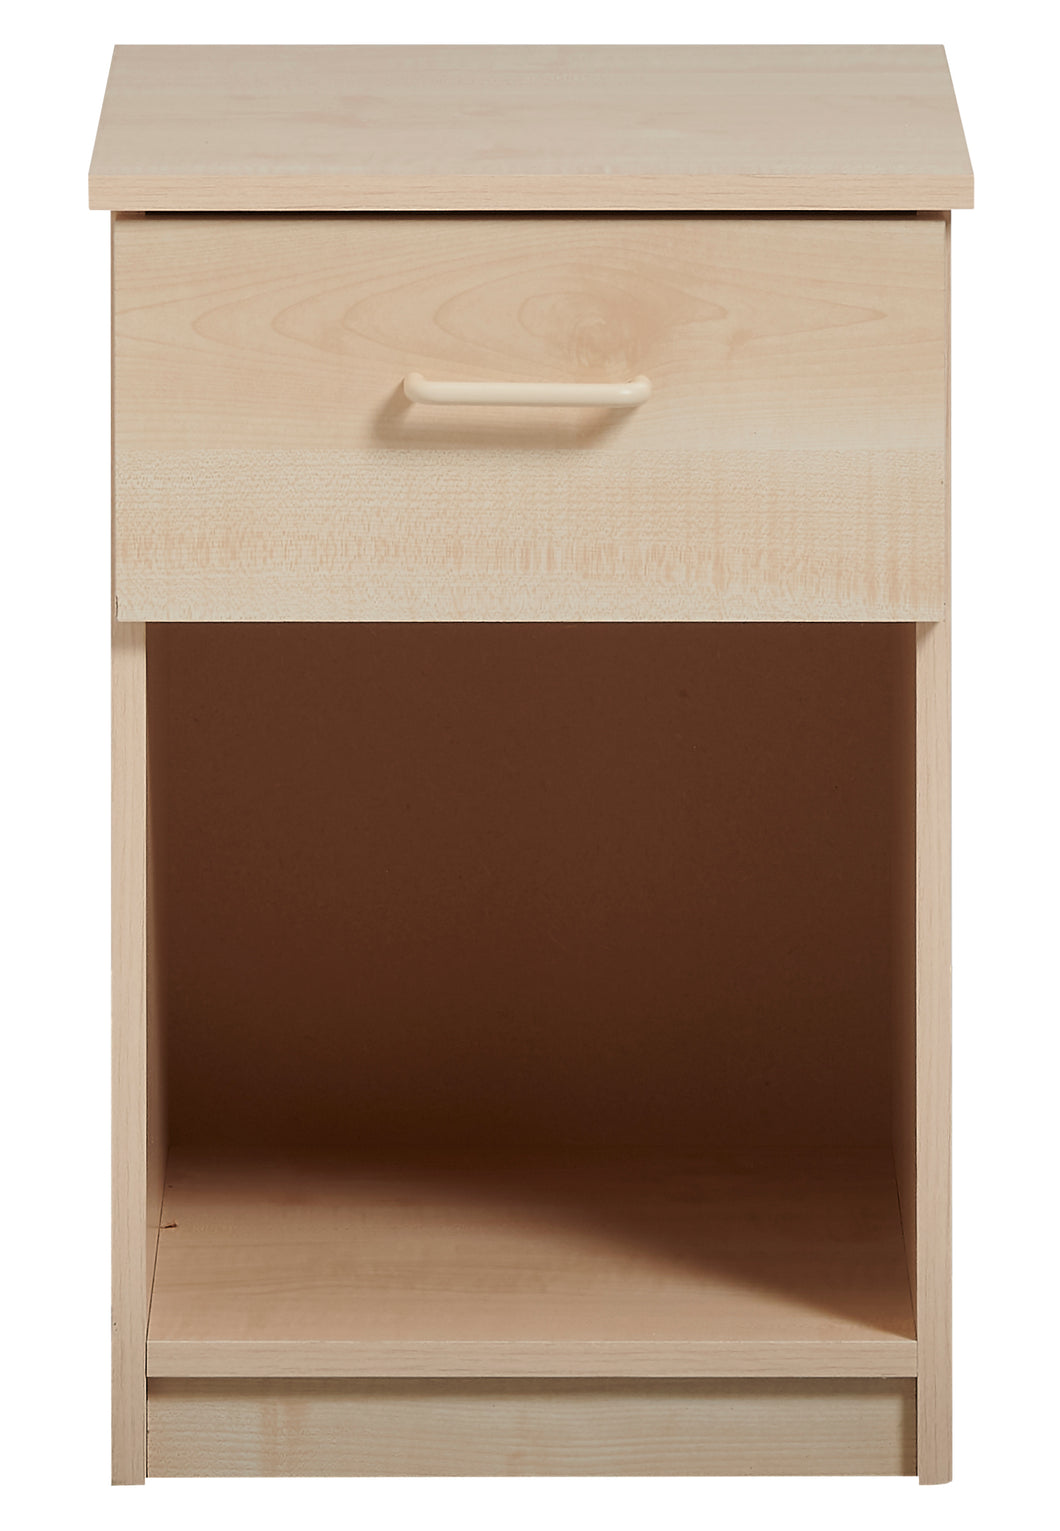 Calgary 1 Drawer Bedside (With Lock) - Property Letting Furniture Solutions